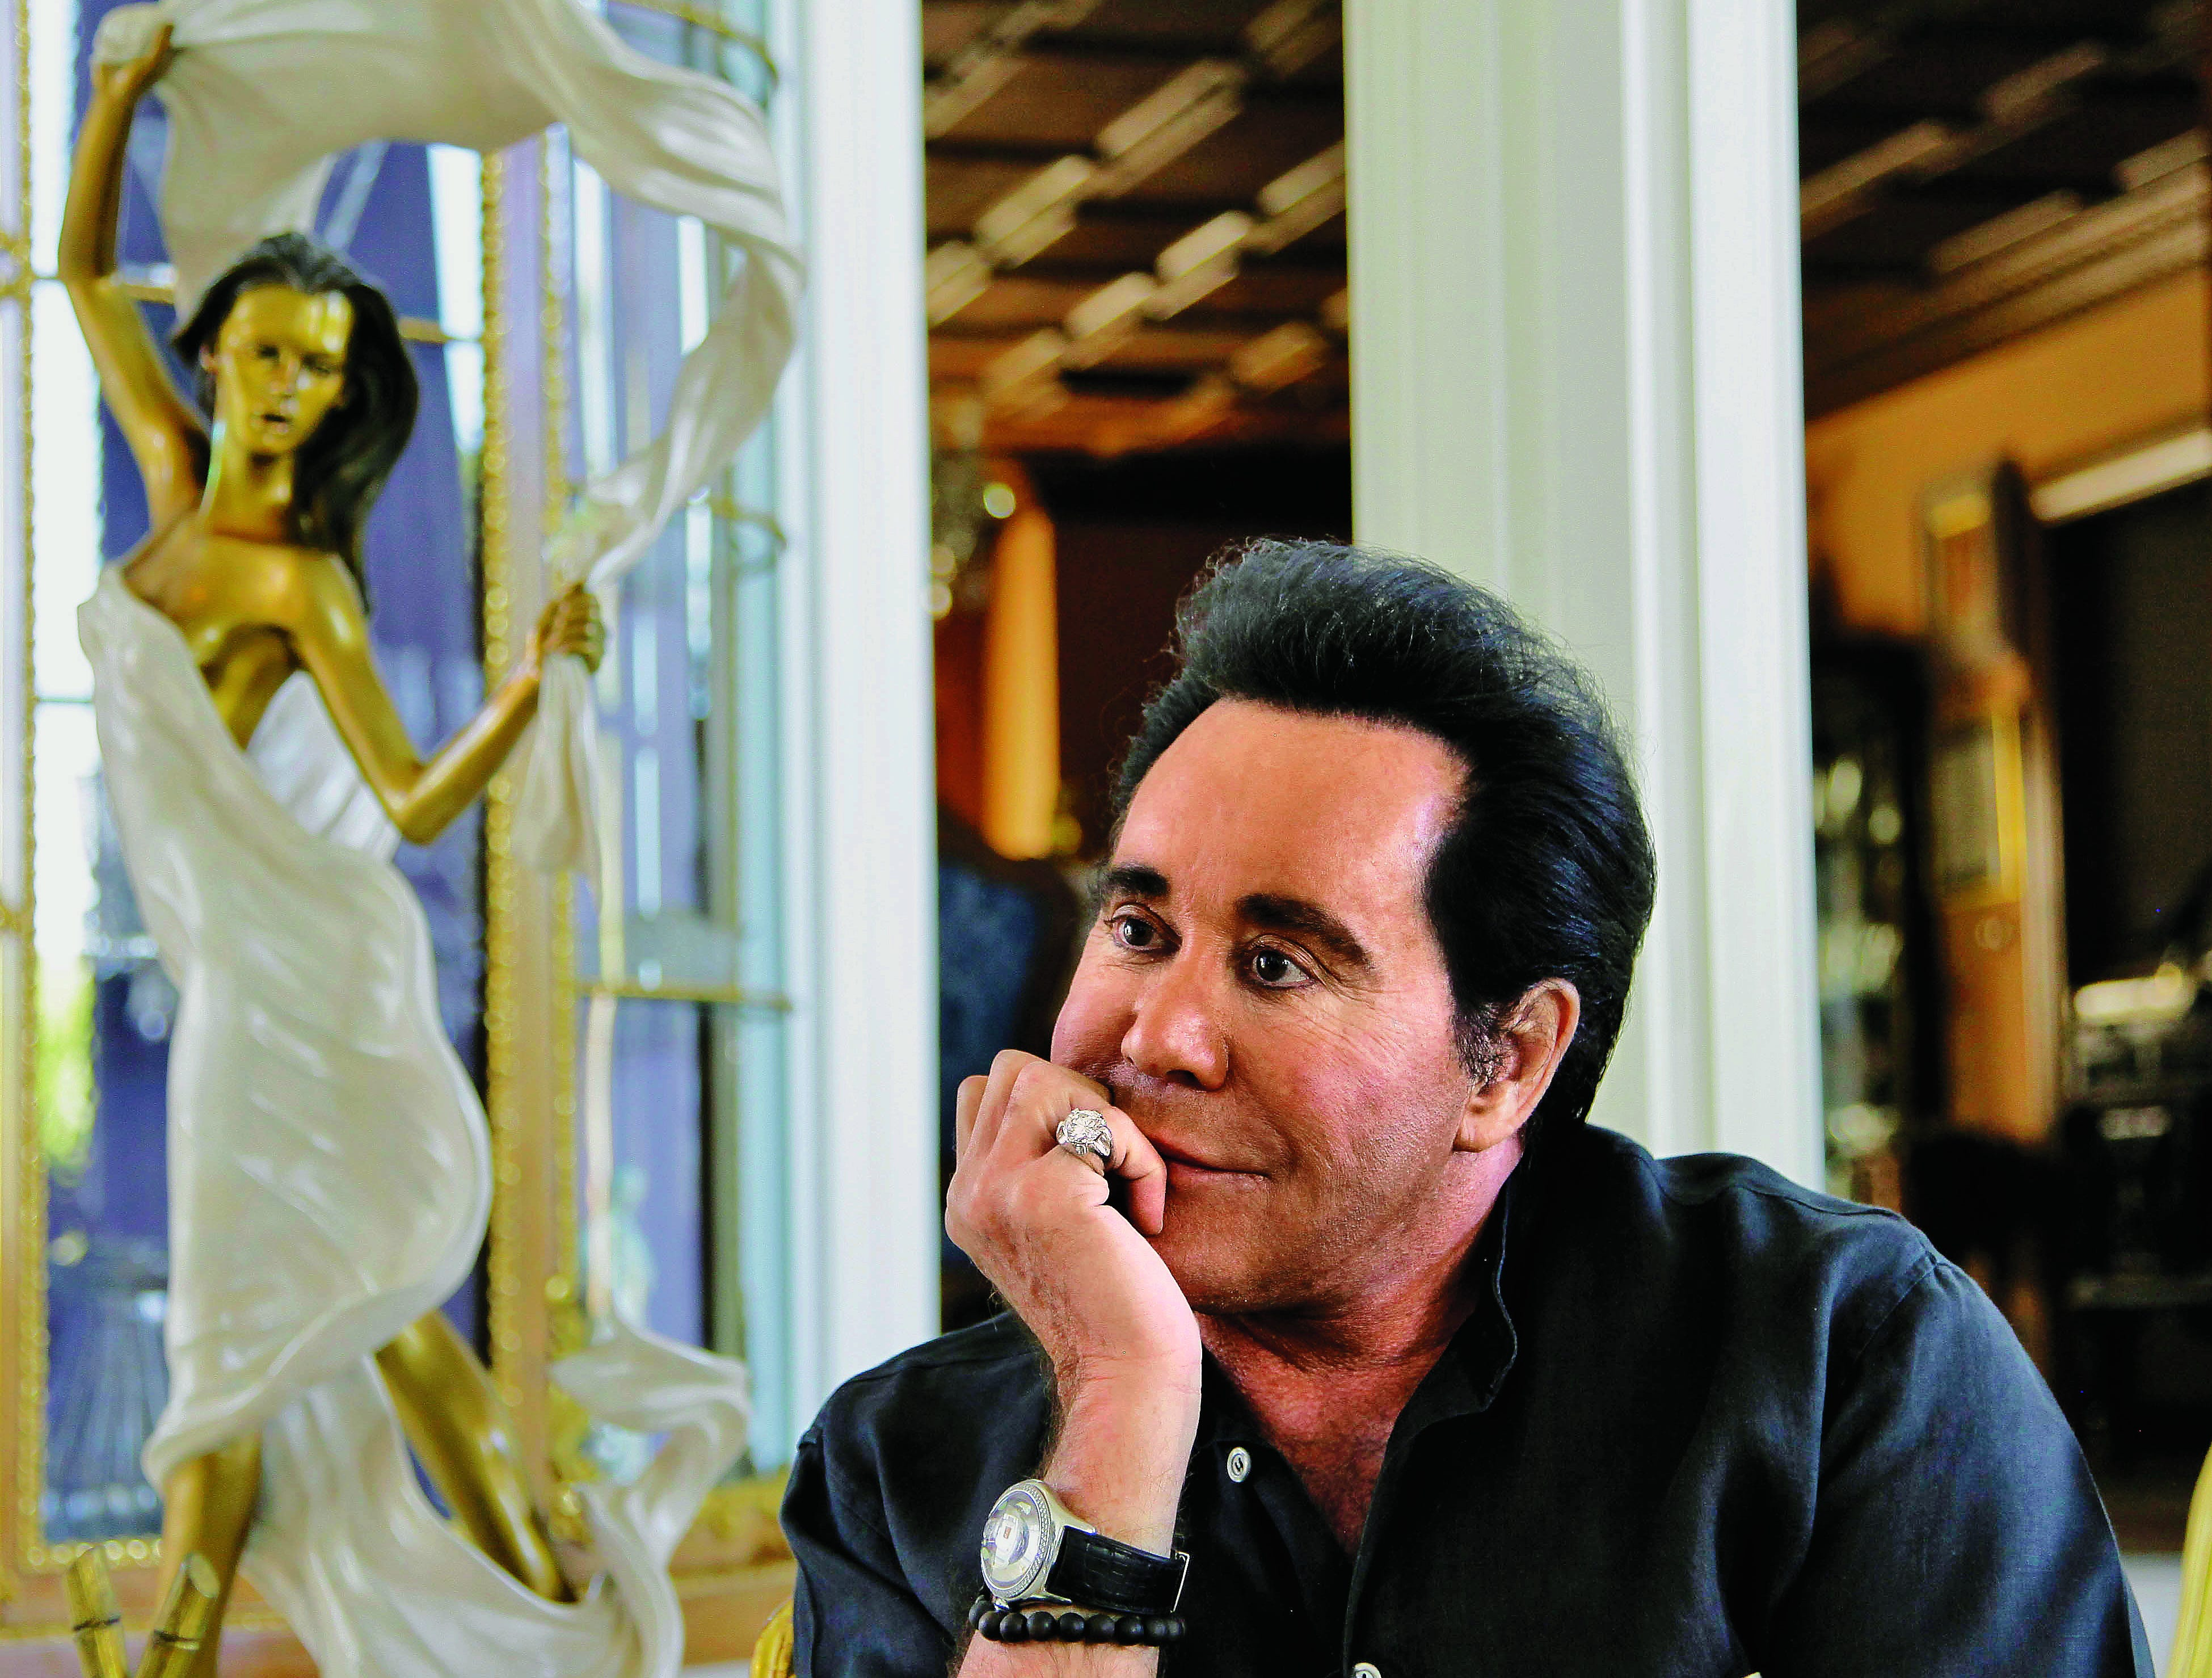 In this photo taken Friday, Nov. 12, 2010, Wayne Newton answers questions during an interview at his home in Las Vegas.